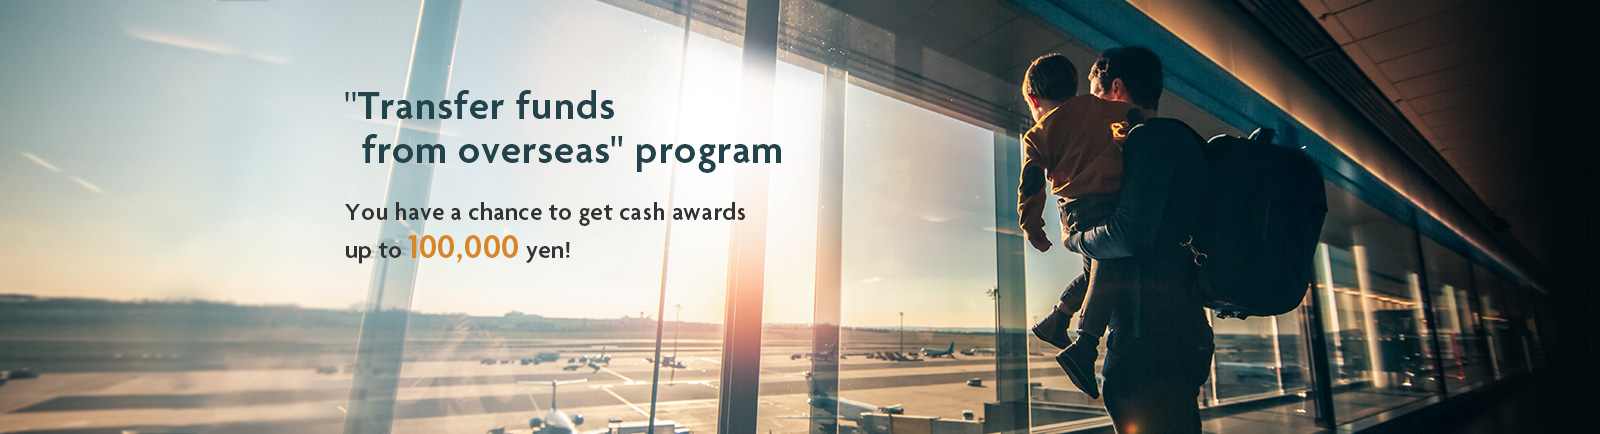 """Transfer funds from overseas"" program.You have a chance to get cash awards up to 100,000 yen!"